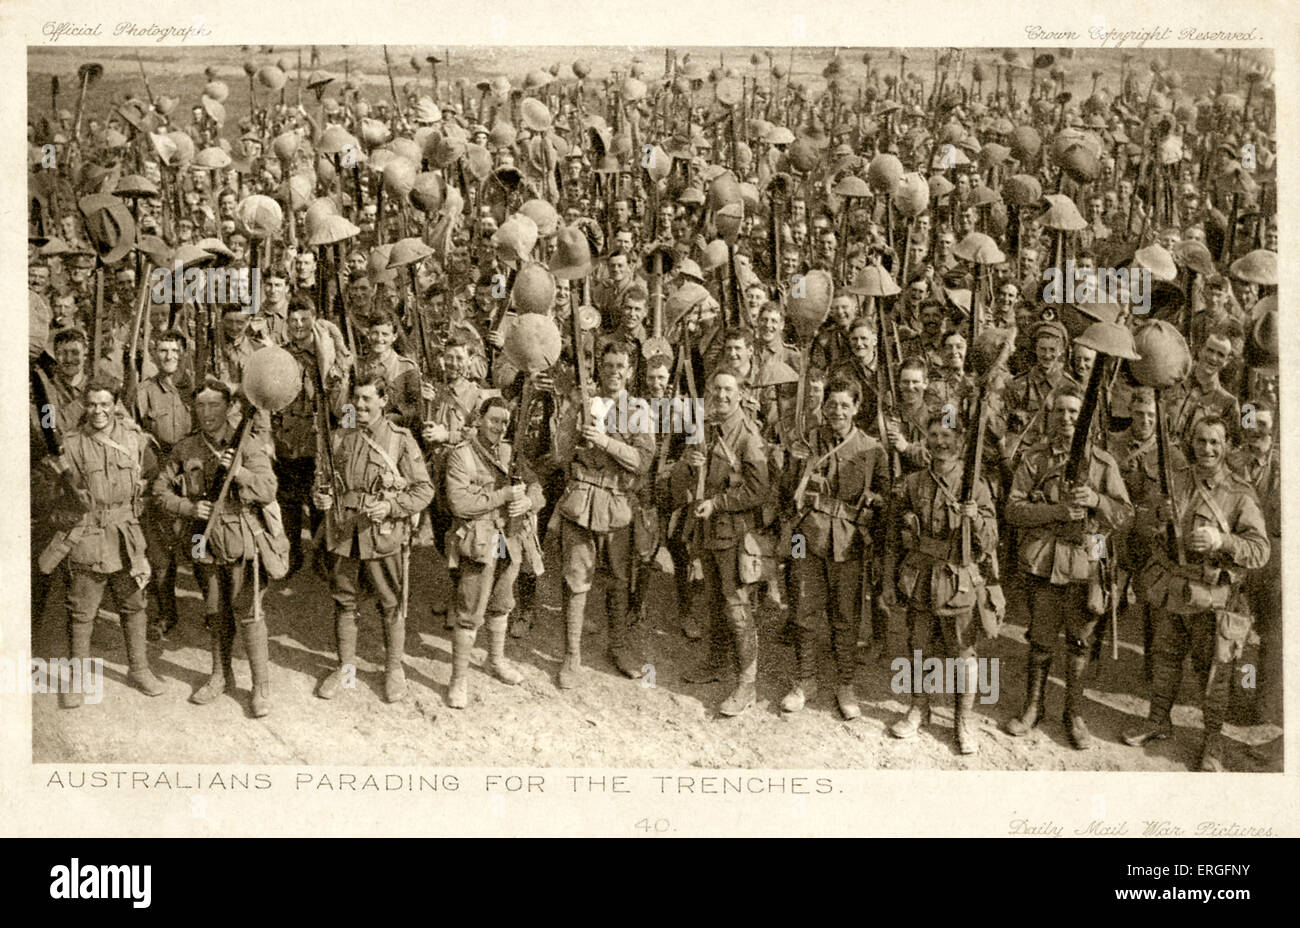 Parade of Australian soldiers at the trenches on the Western Front, following capture of Pozières on 23 July 1916. Stock Photo